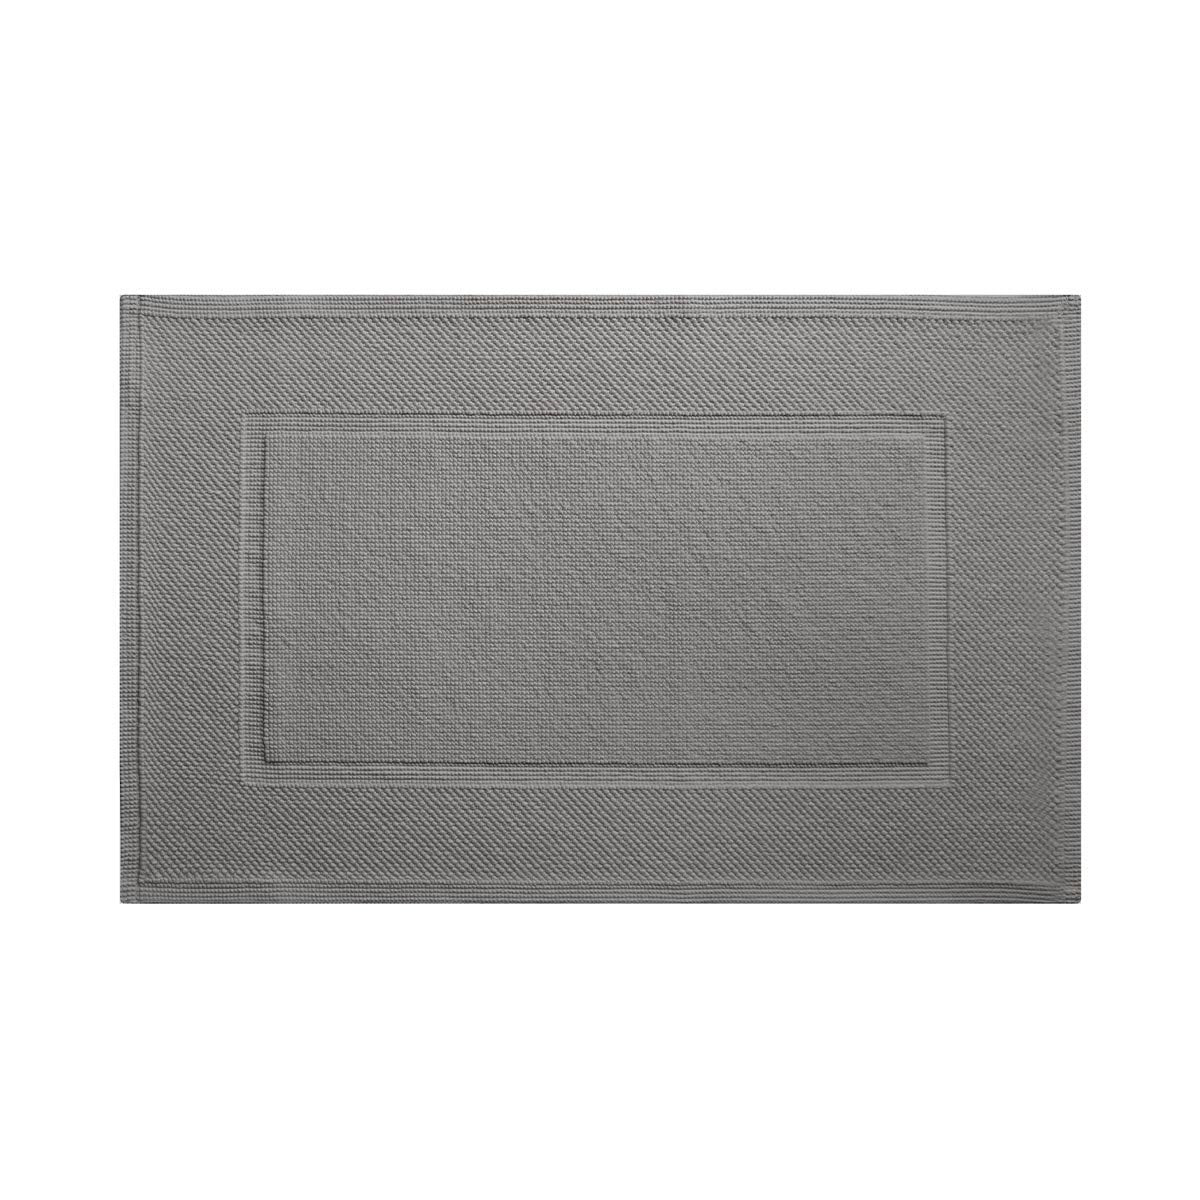 Eden Platine Bath Mat by Yves Delorme | Fig Linens and Home - gray bath mat, rug